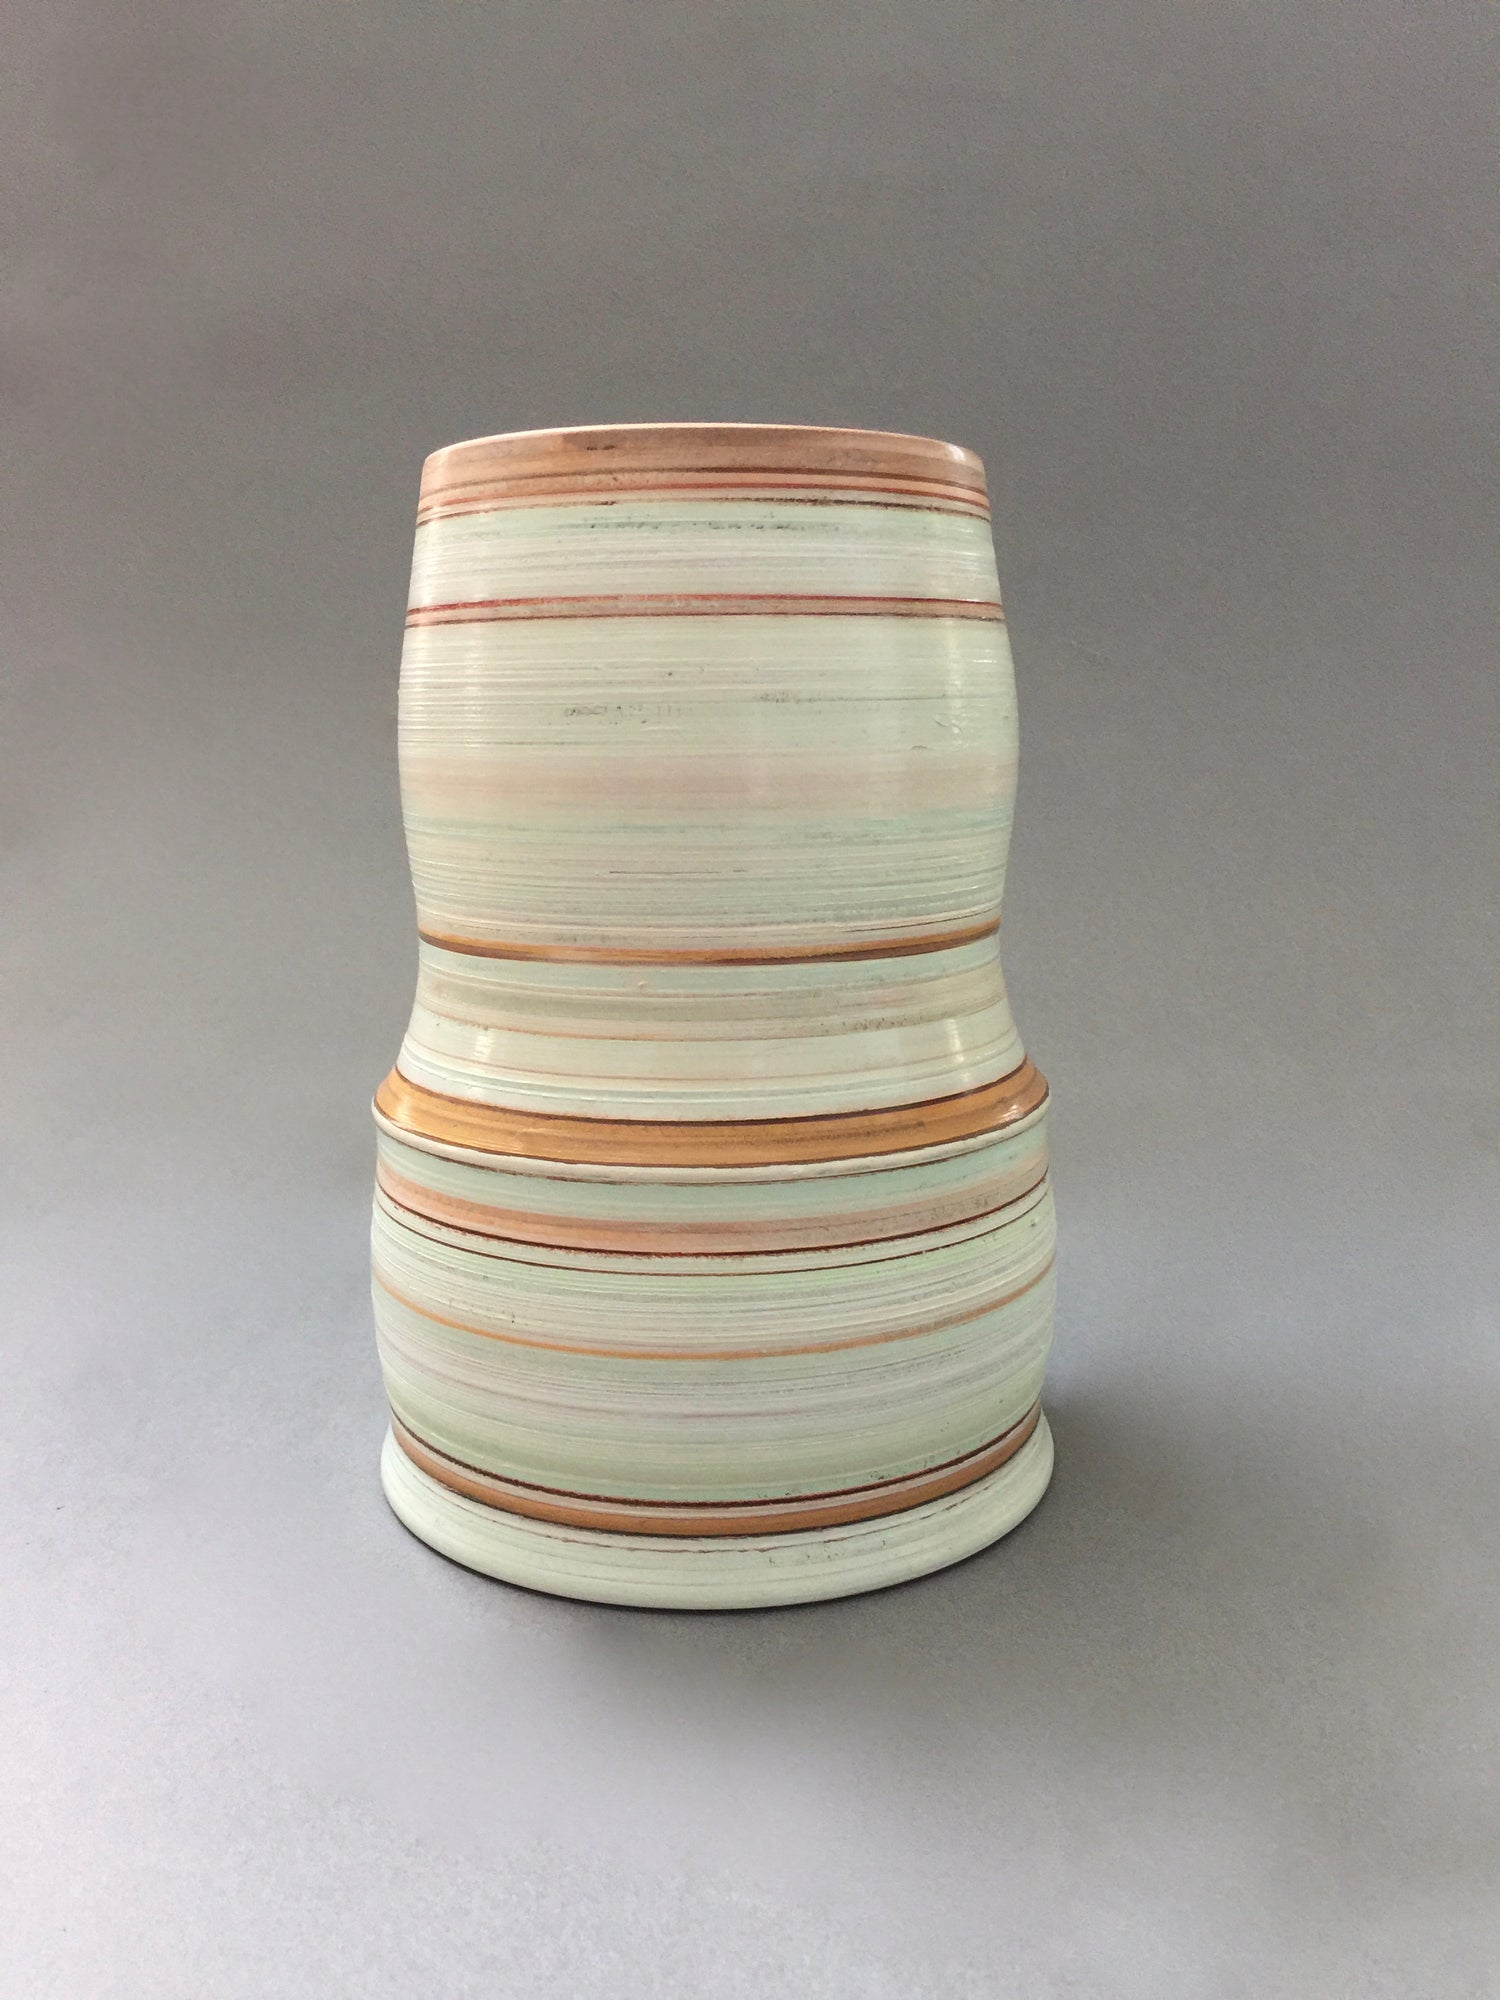 Image of Turned Wood Vase with Painted and Stained Finish Mint Greens and Browns